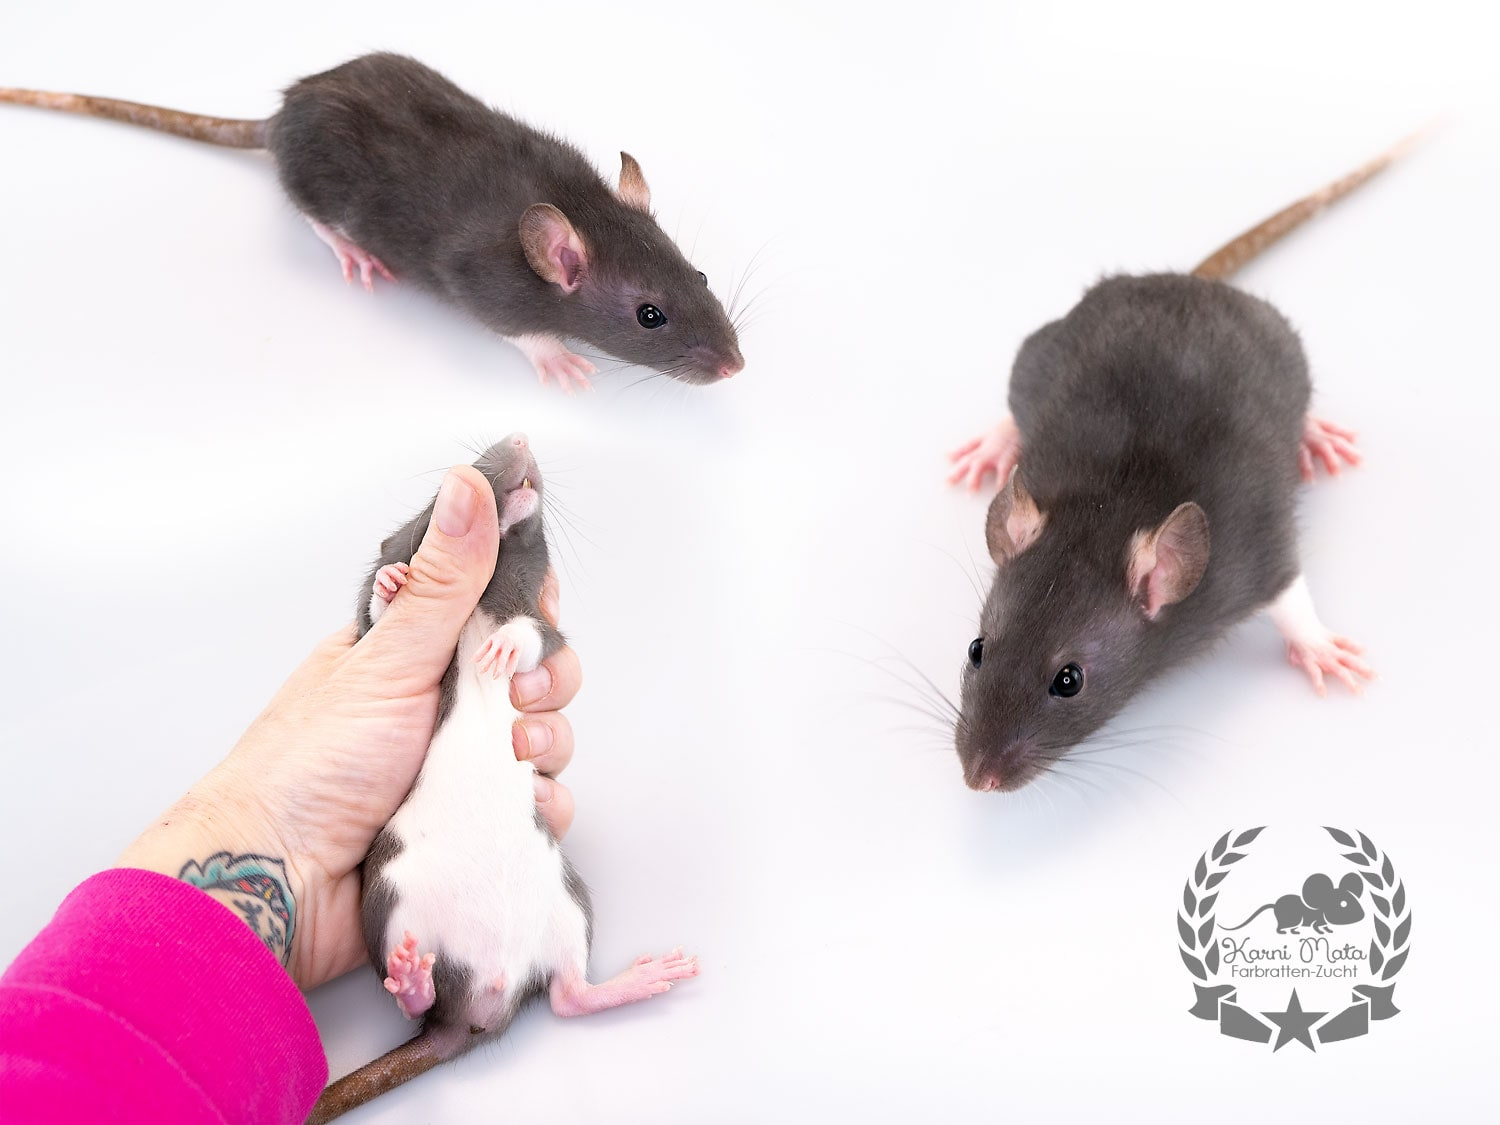 Karni Mata's The first Noel (f./w.), Farbratte / Fancyrat, Black Berkshire